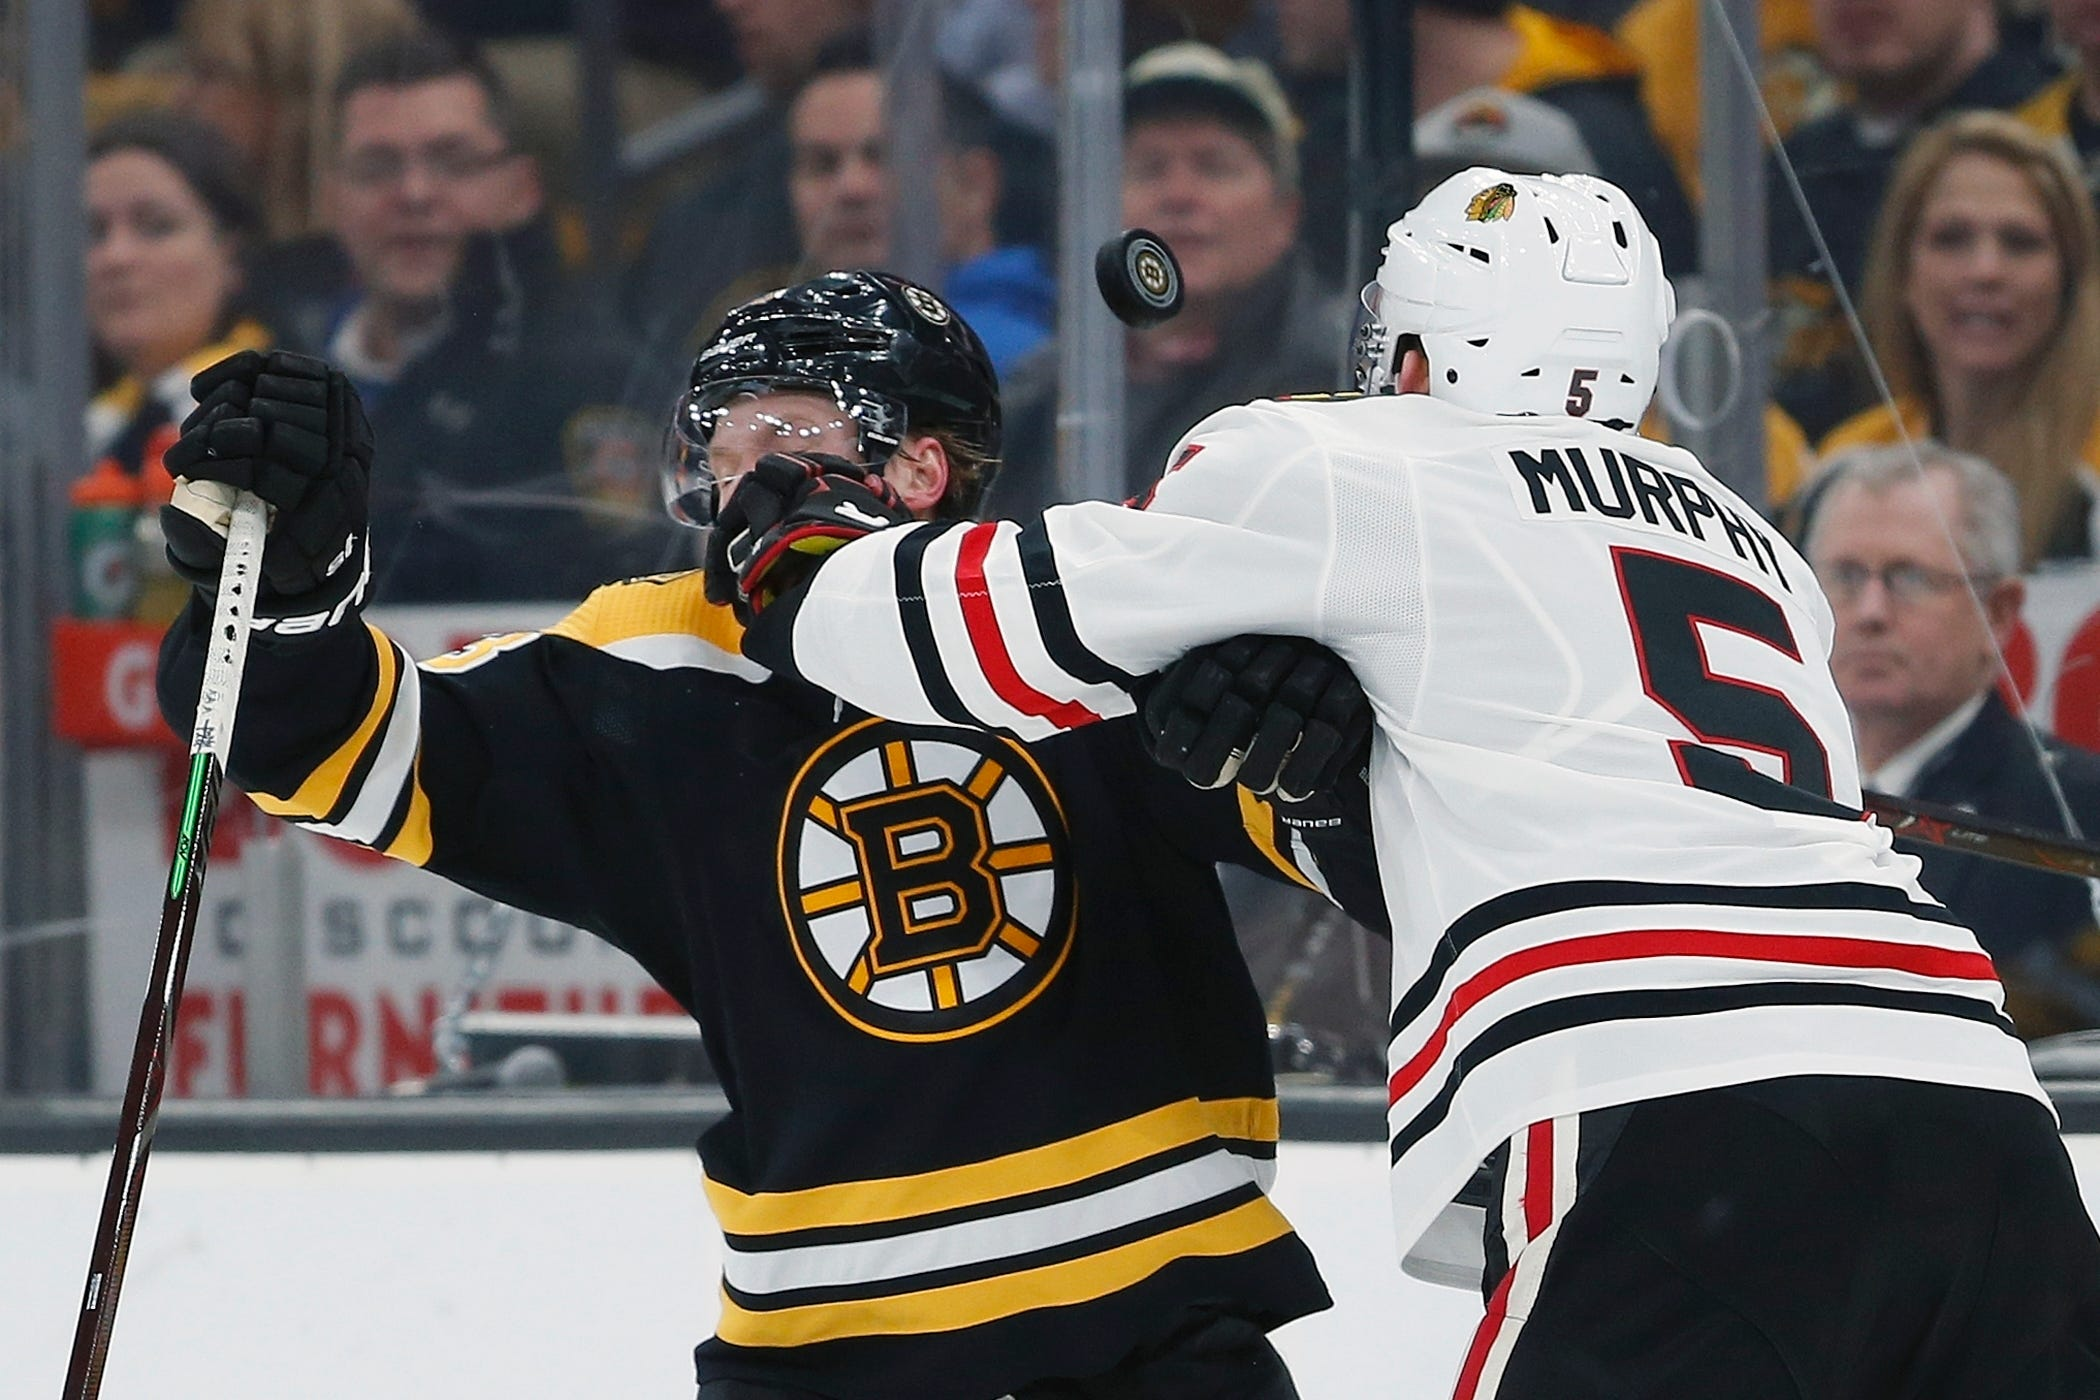 Bruins beat Blackhawks 6-3, end Chicago's seven-game winning streak